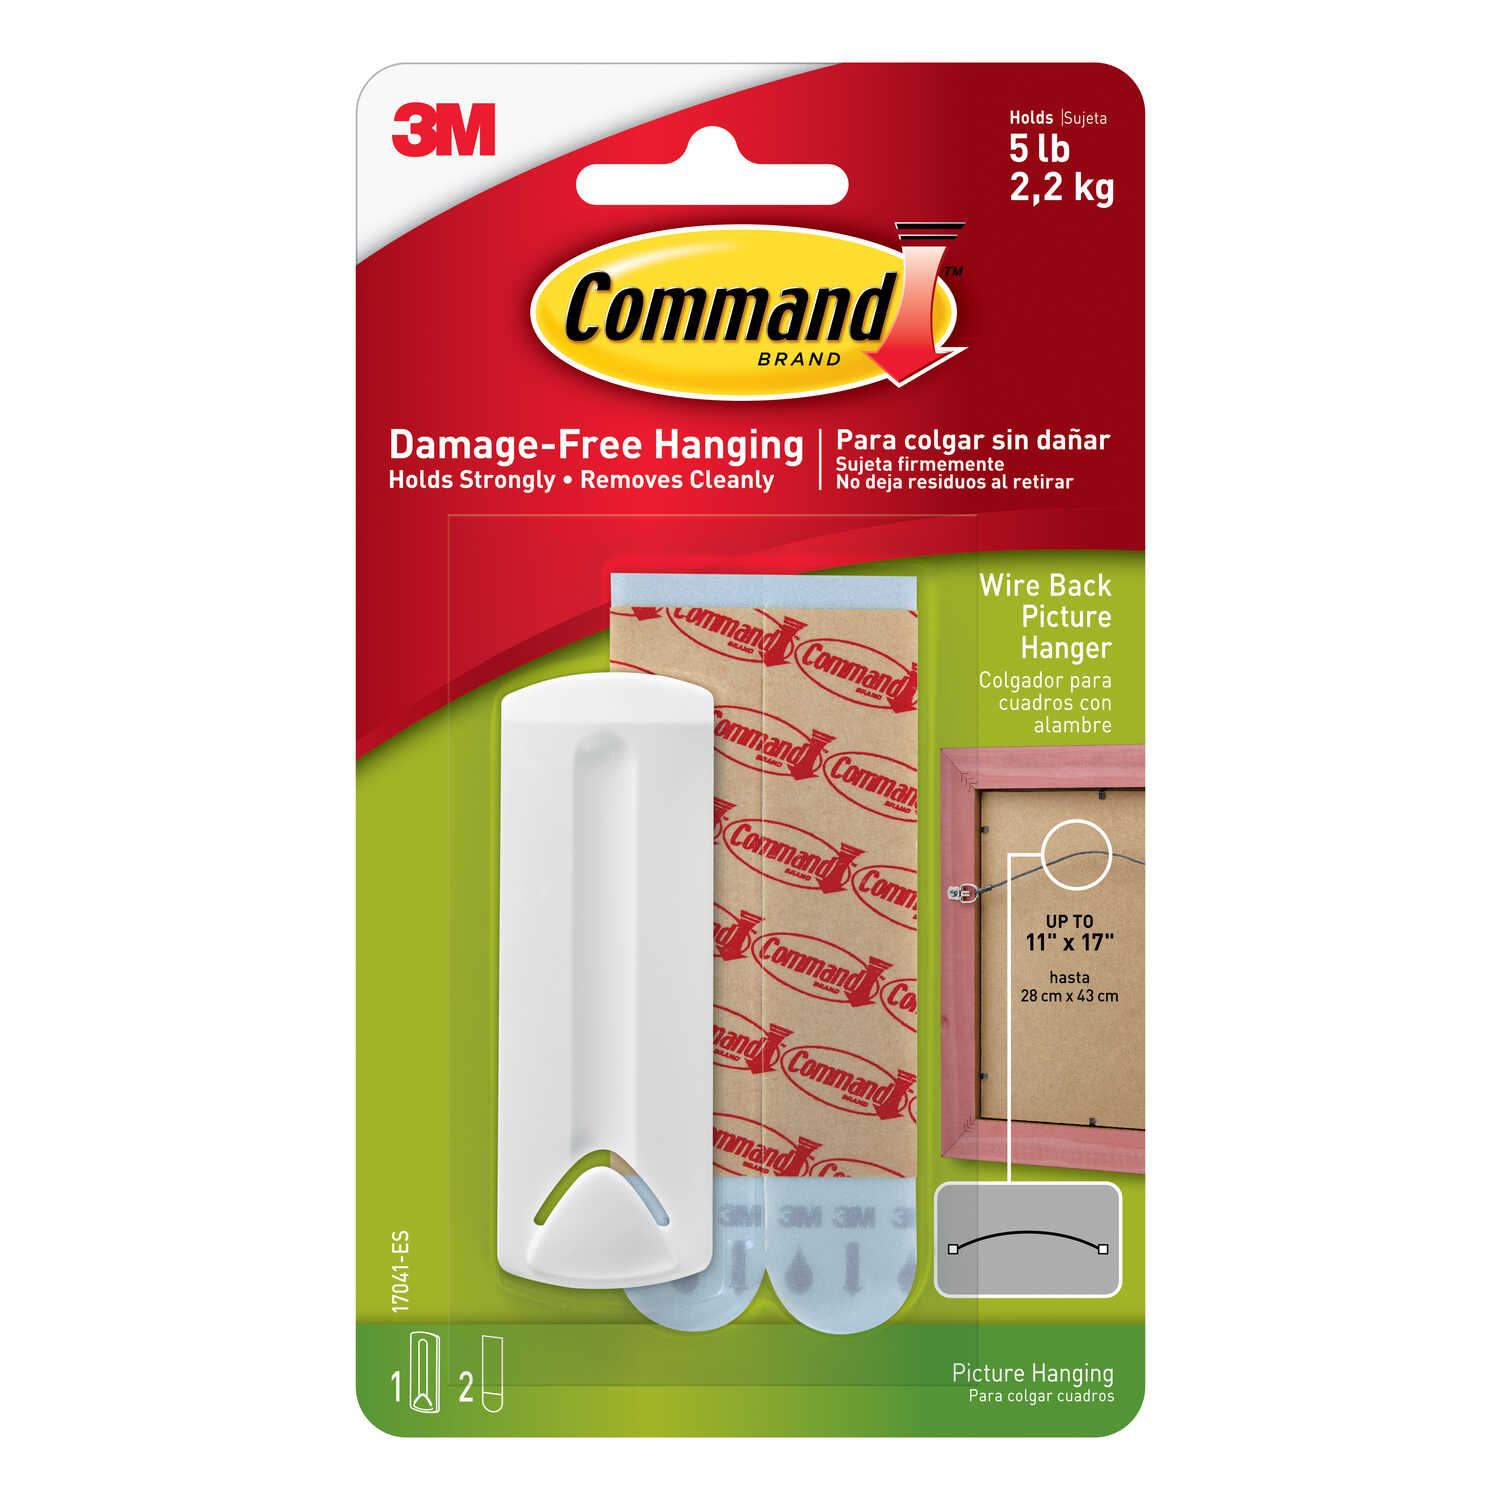 3M  Command  Plastic Coated  White  Plastic  Wire Backed Picture Hanger  5 lb. 1 pk